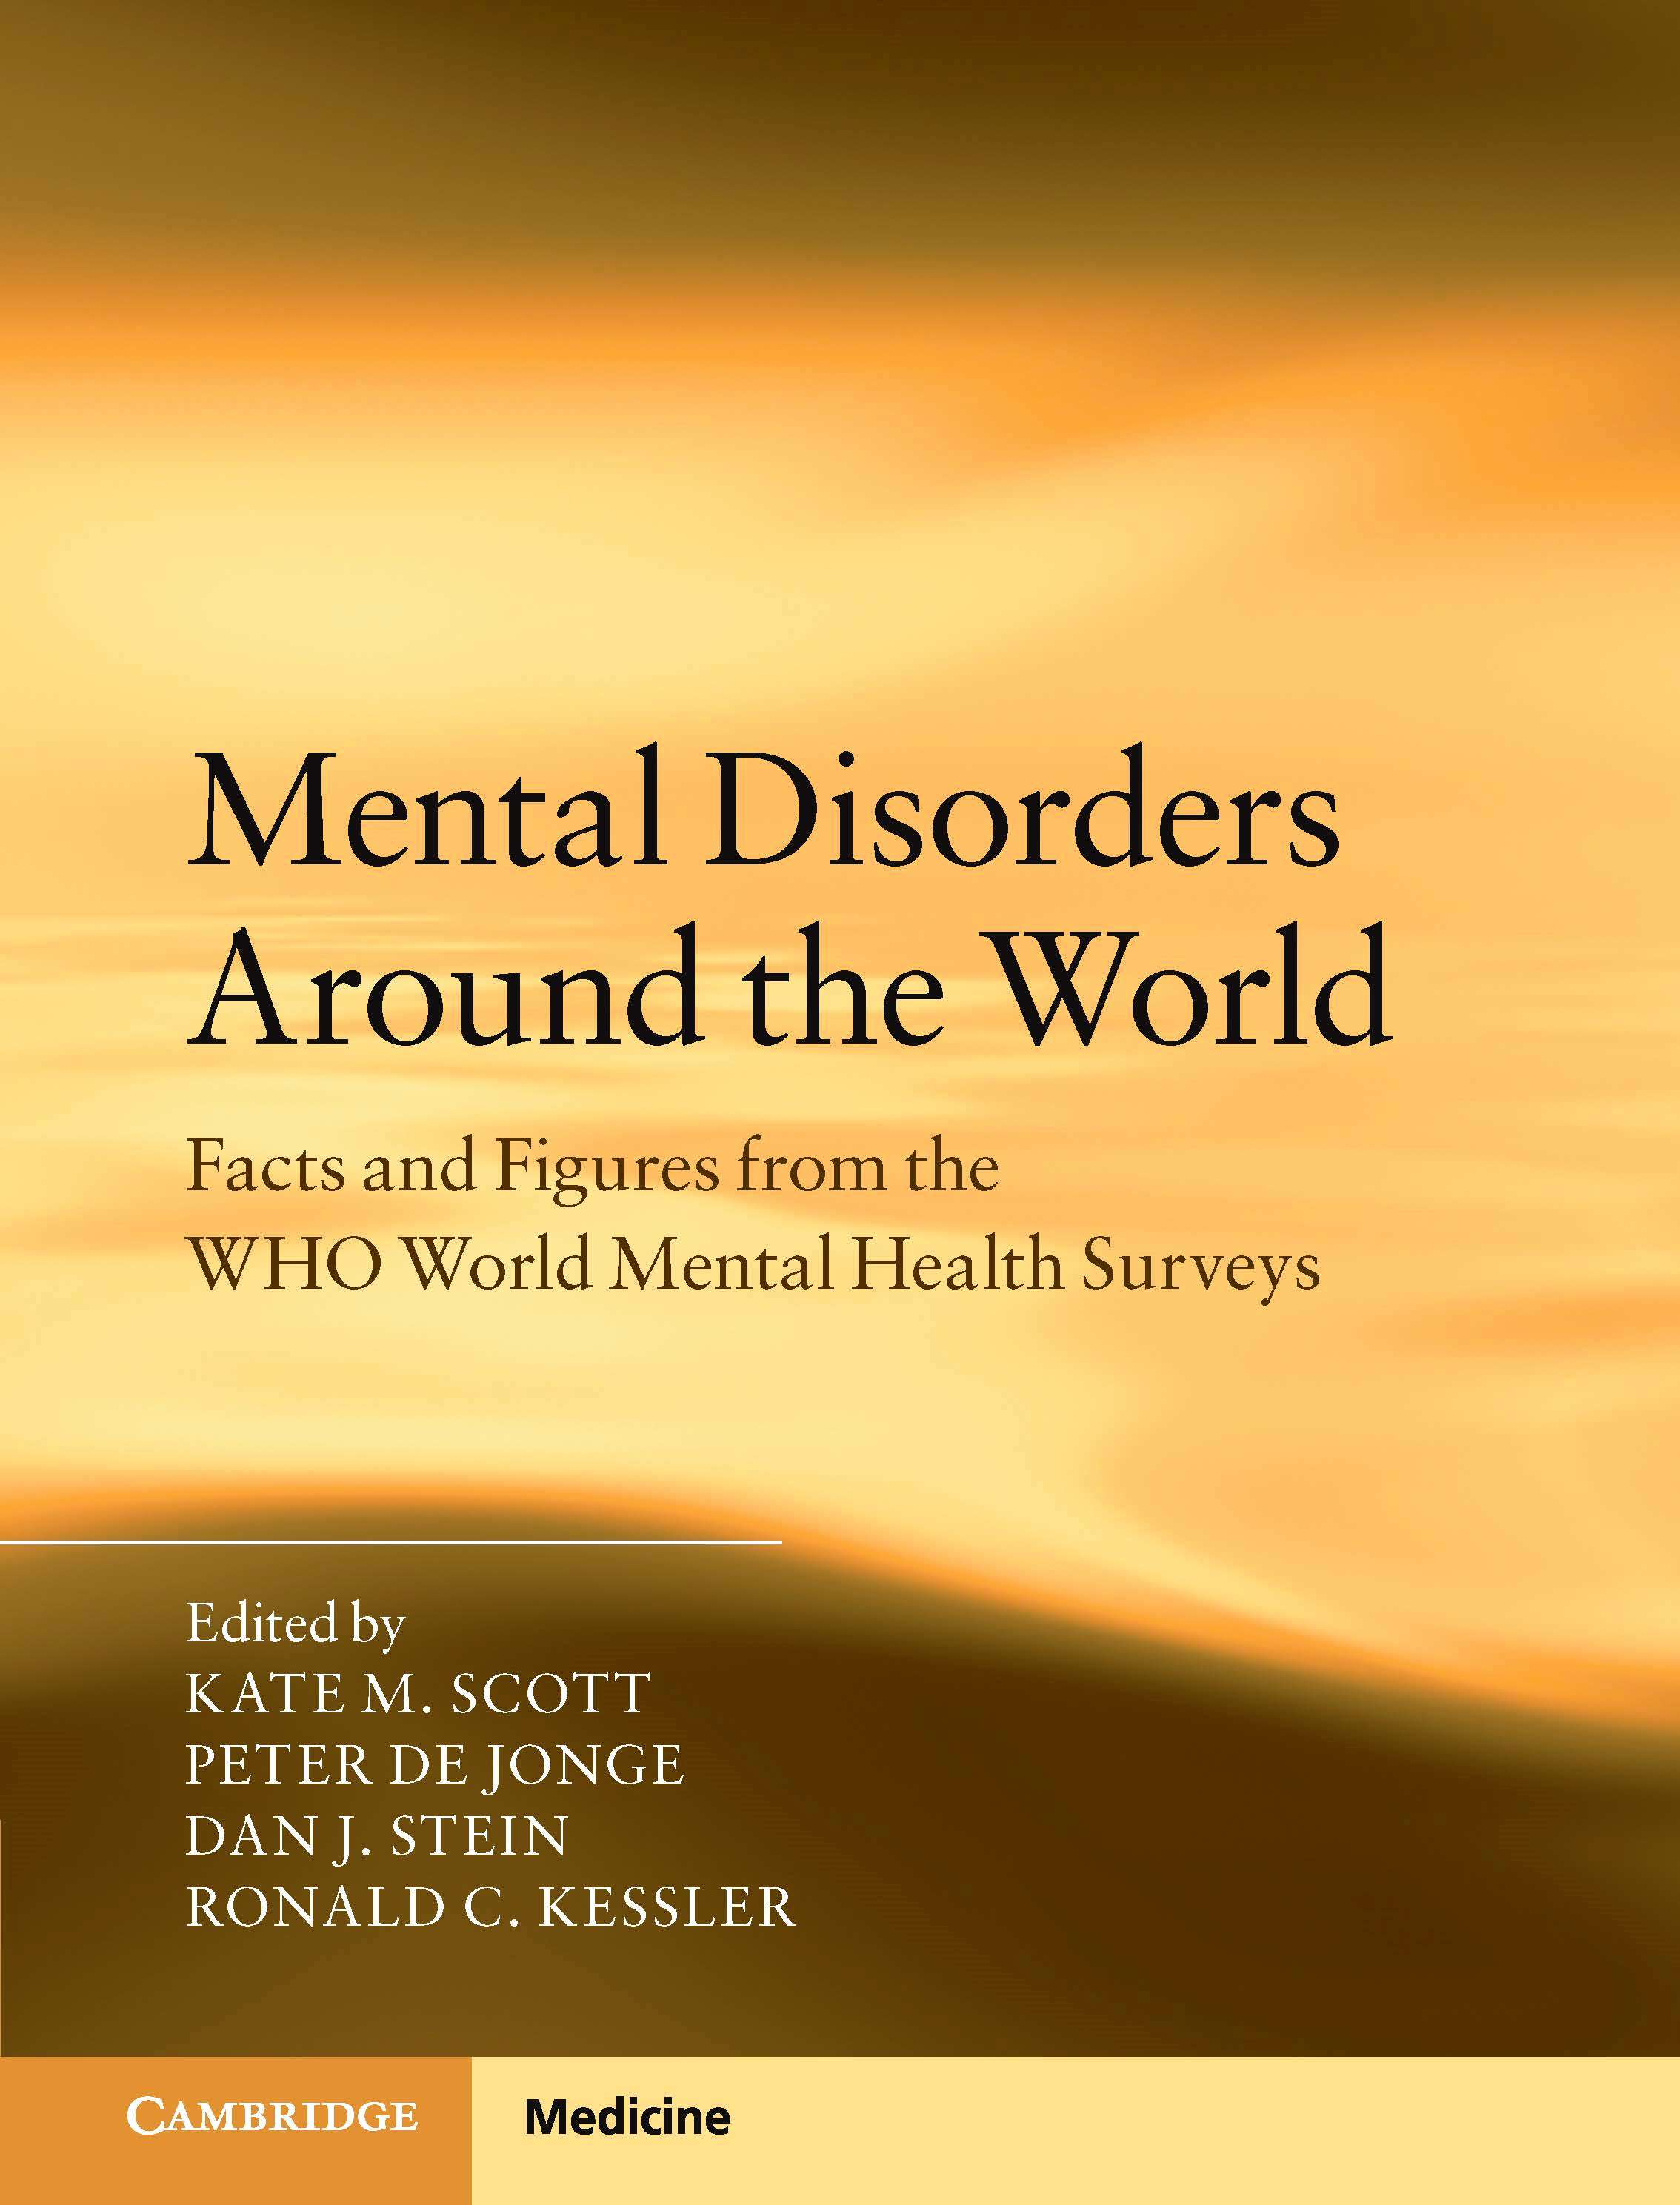 Mental Disorders around the World: